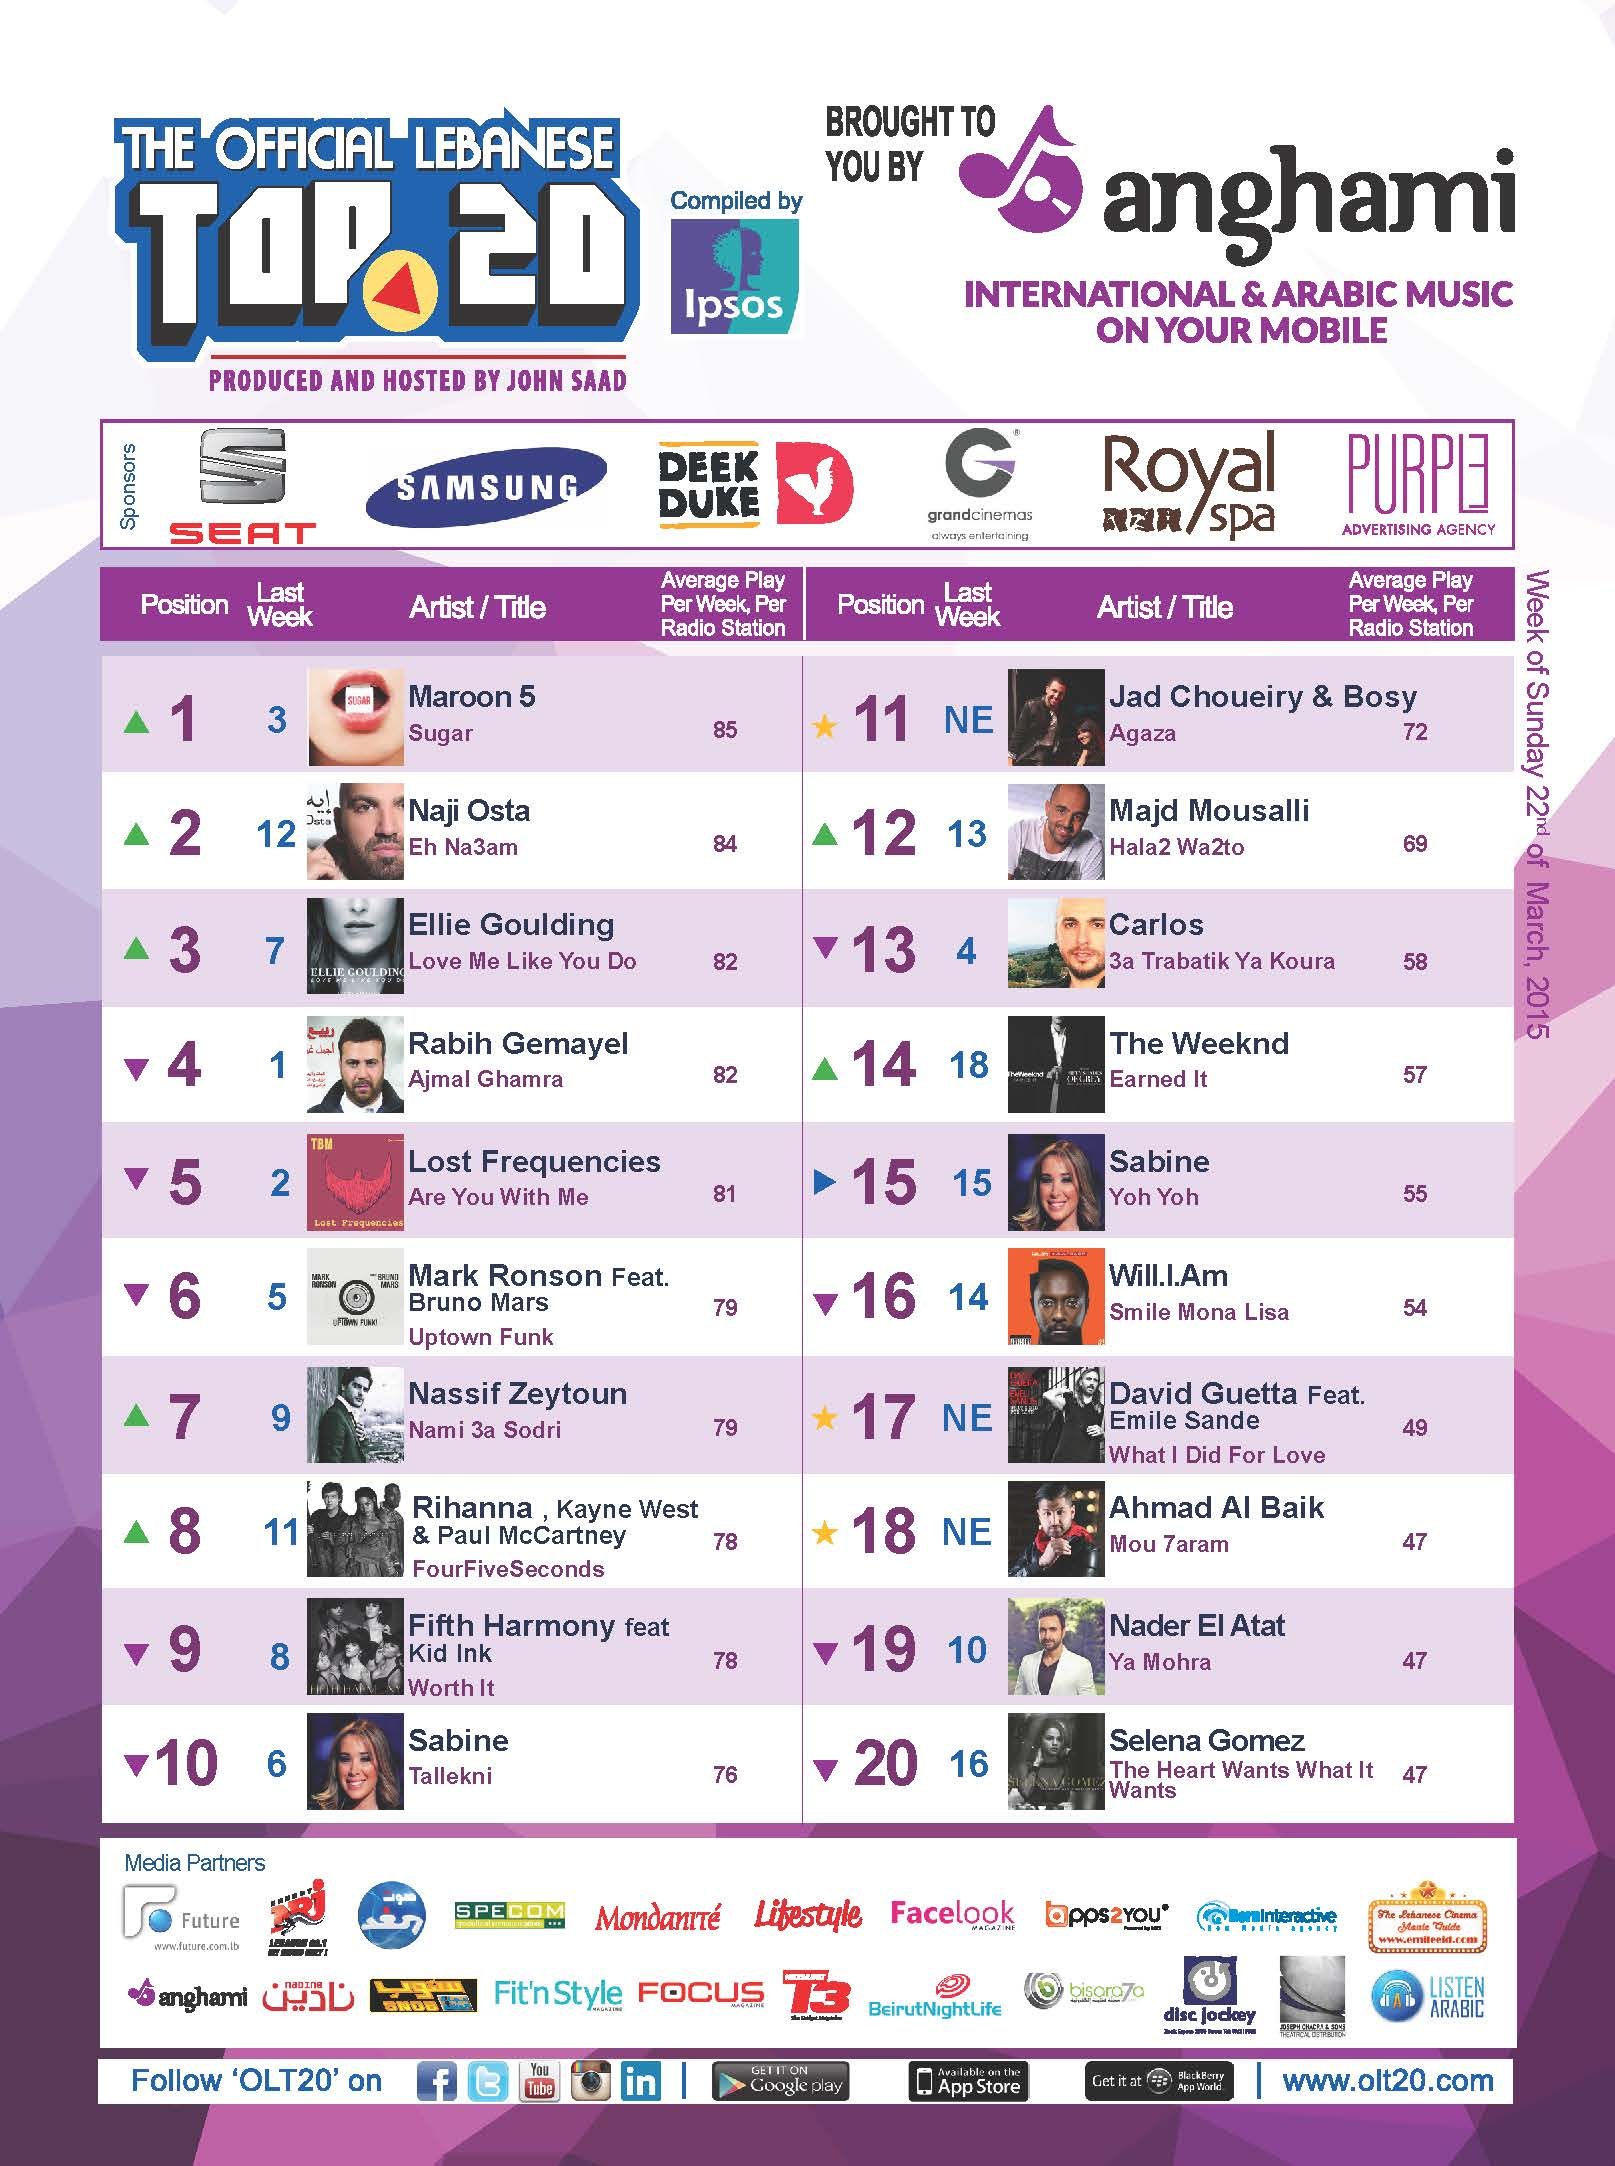 f12b7ddd9 BeirutNightLife.com Brings You the Official Lebanese Top 20 the Week ...